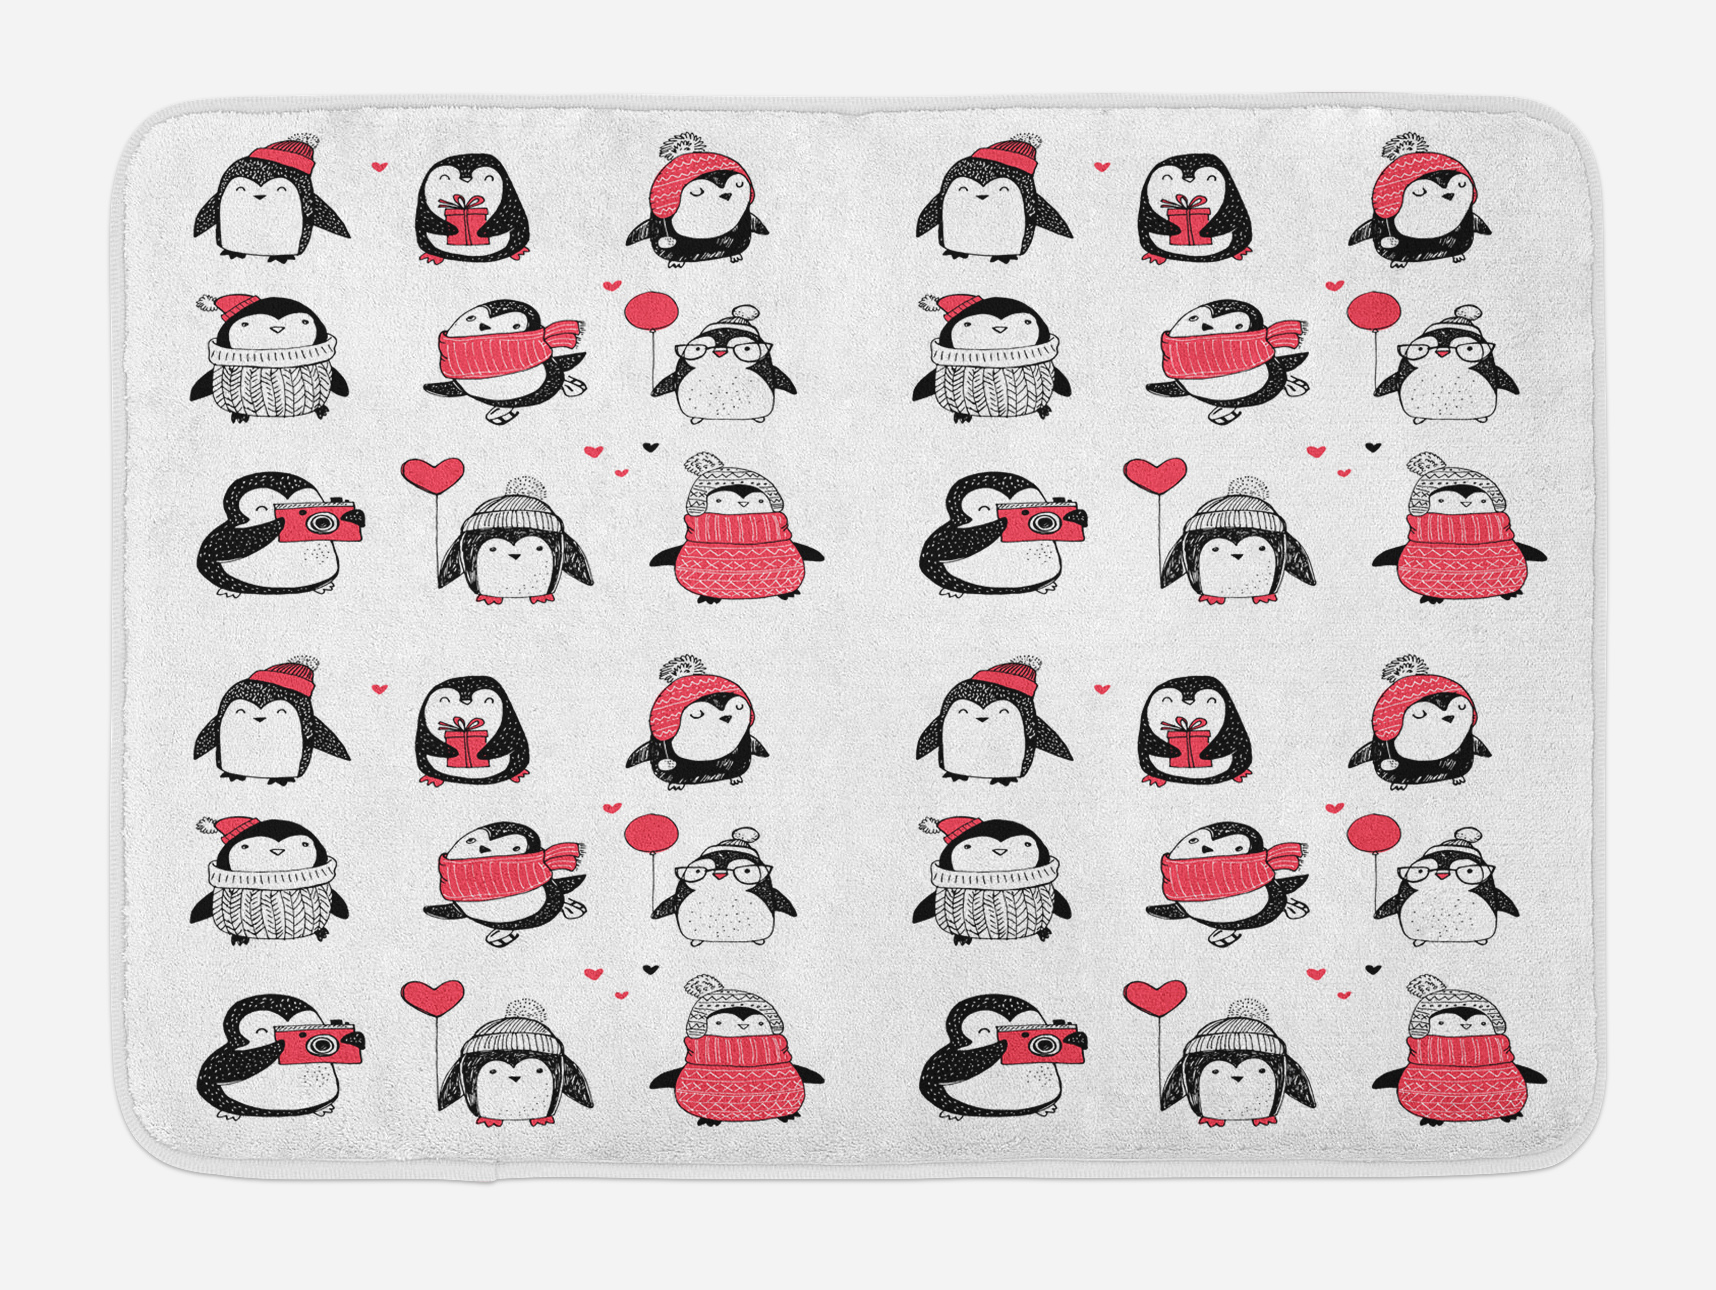 Winter Bath Mat, Cute Penguins Hand Drawn Merry Christmas Greetings Babies Kids Toddler,... by 3decor llc